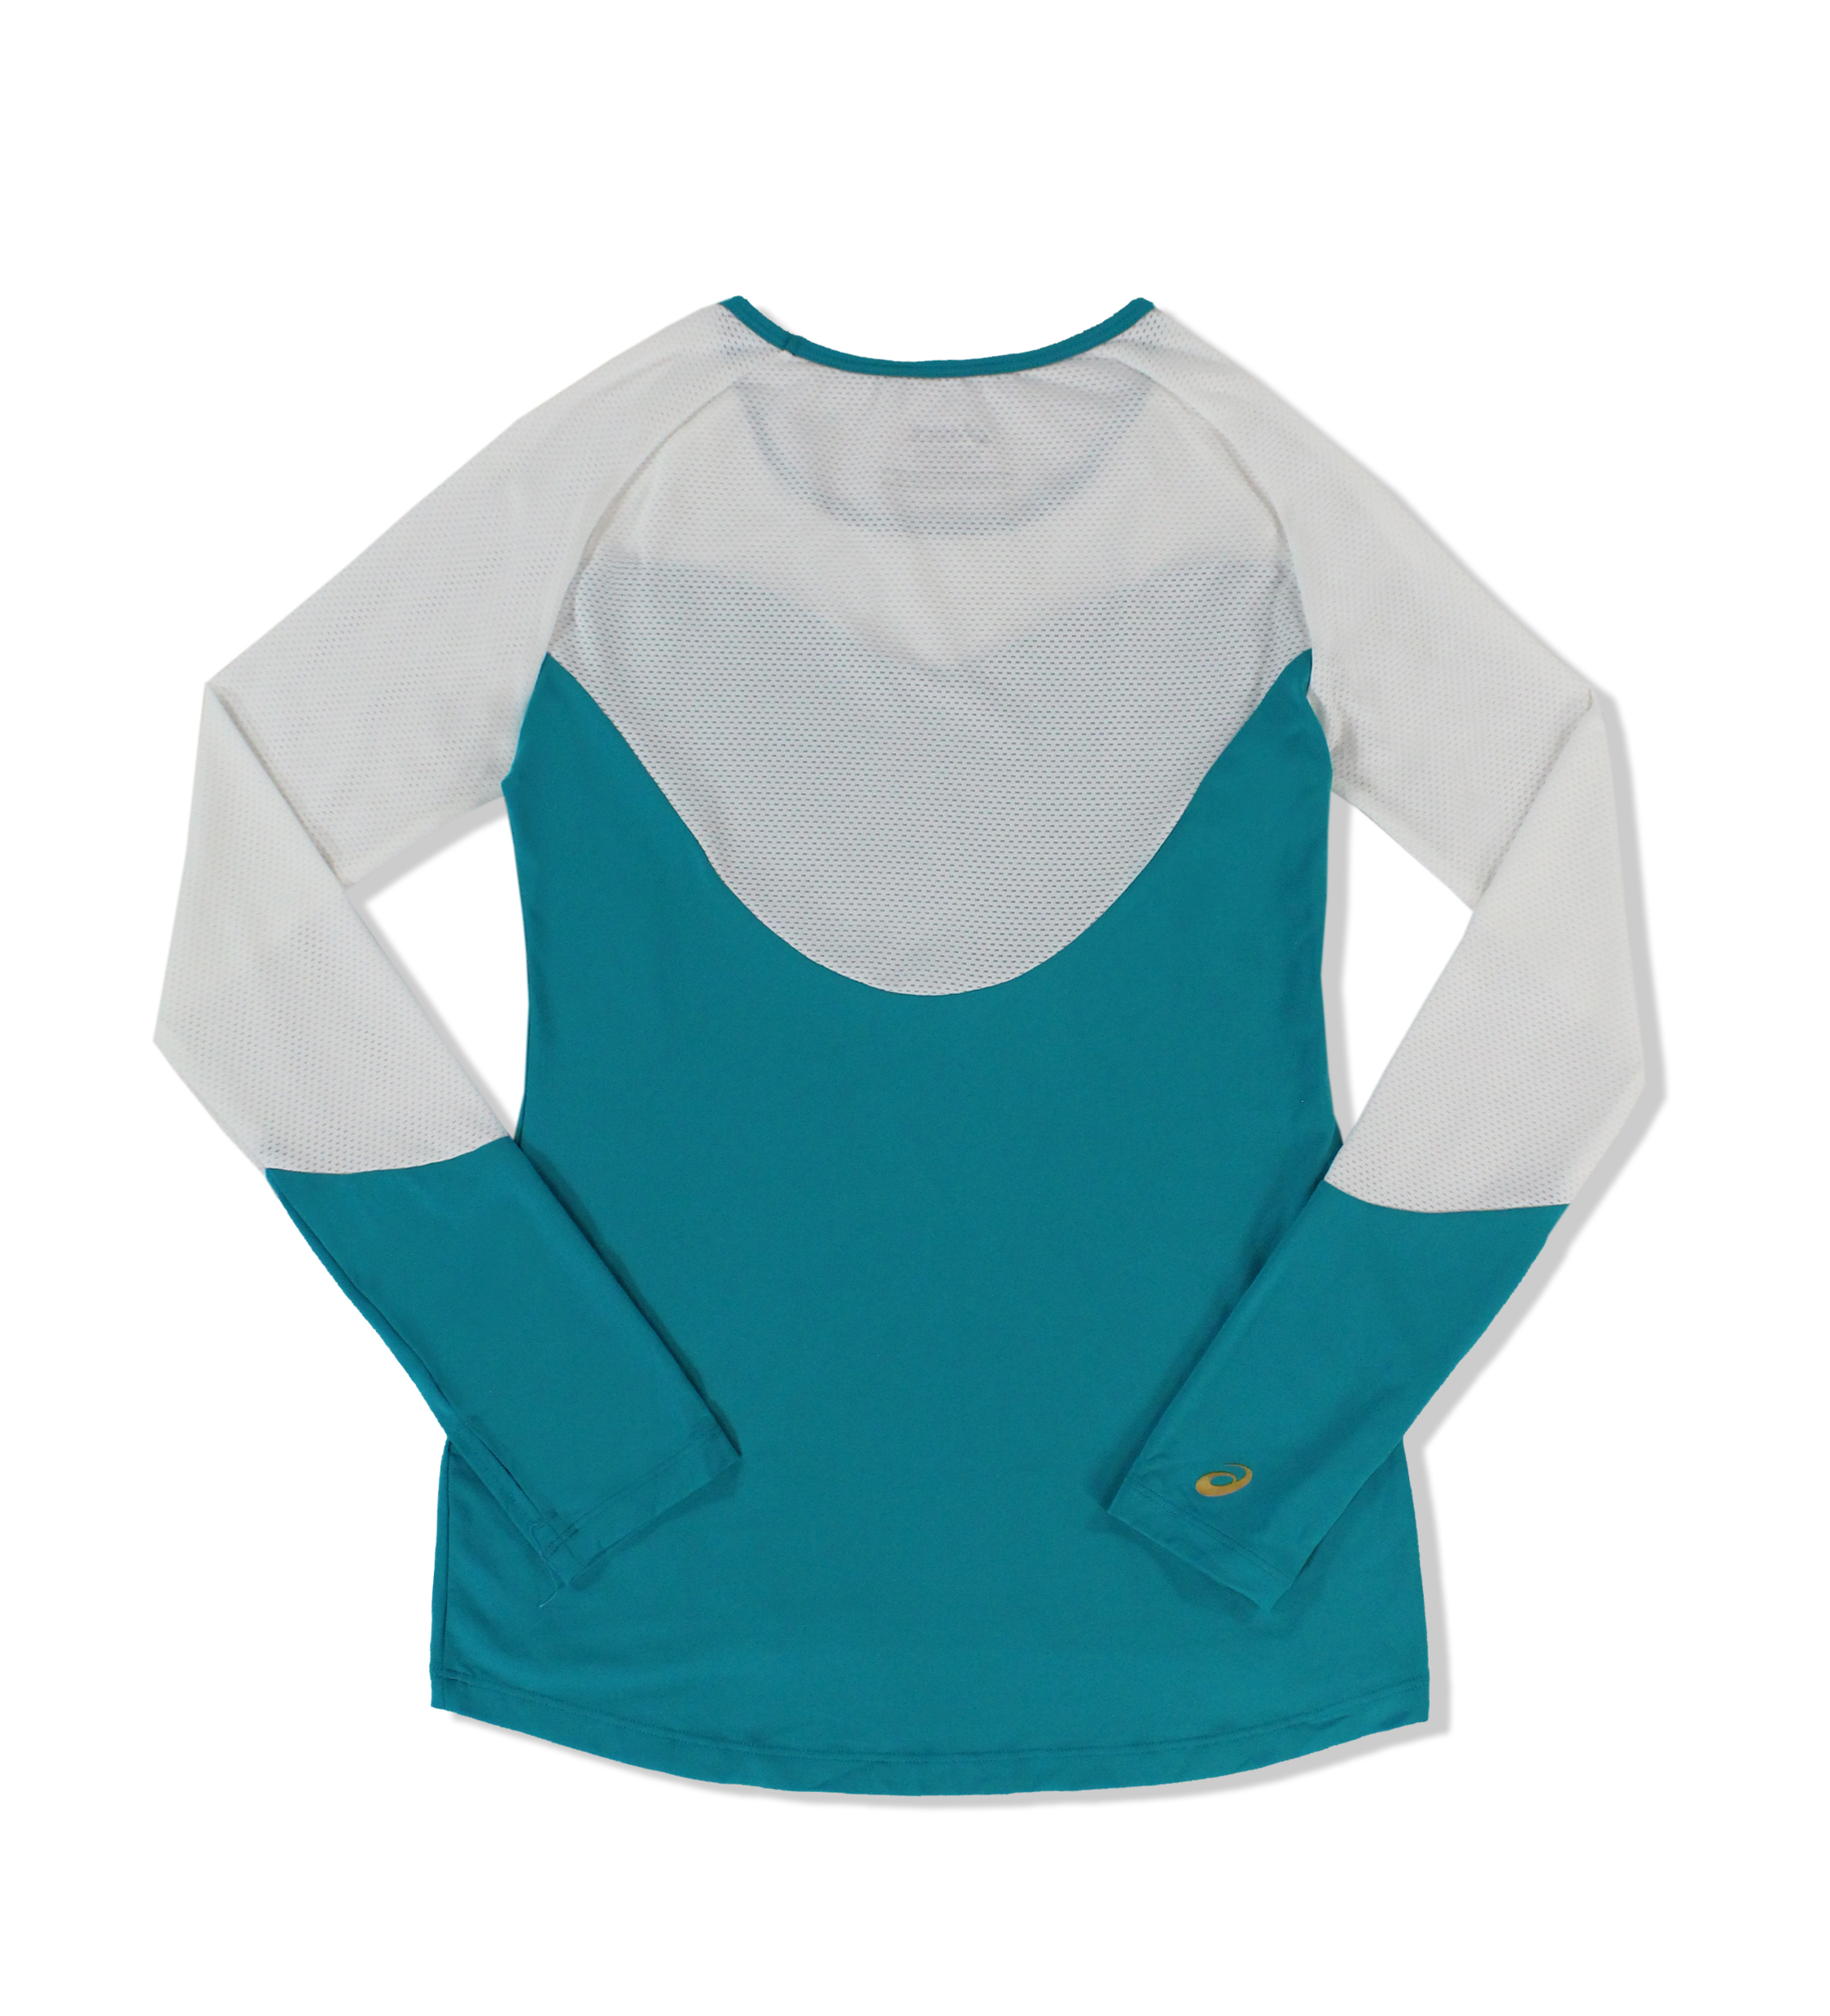 Asics-NEW-Colorblock-Women-039-s-Active-Training-Long-Sleeve-Performance-Top thumbnail 9